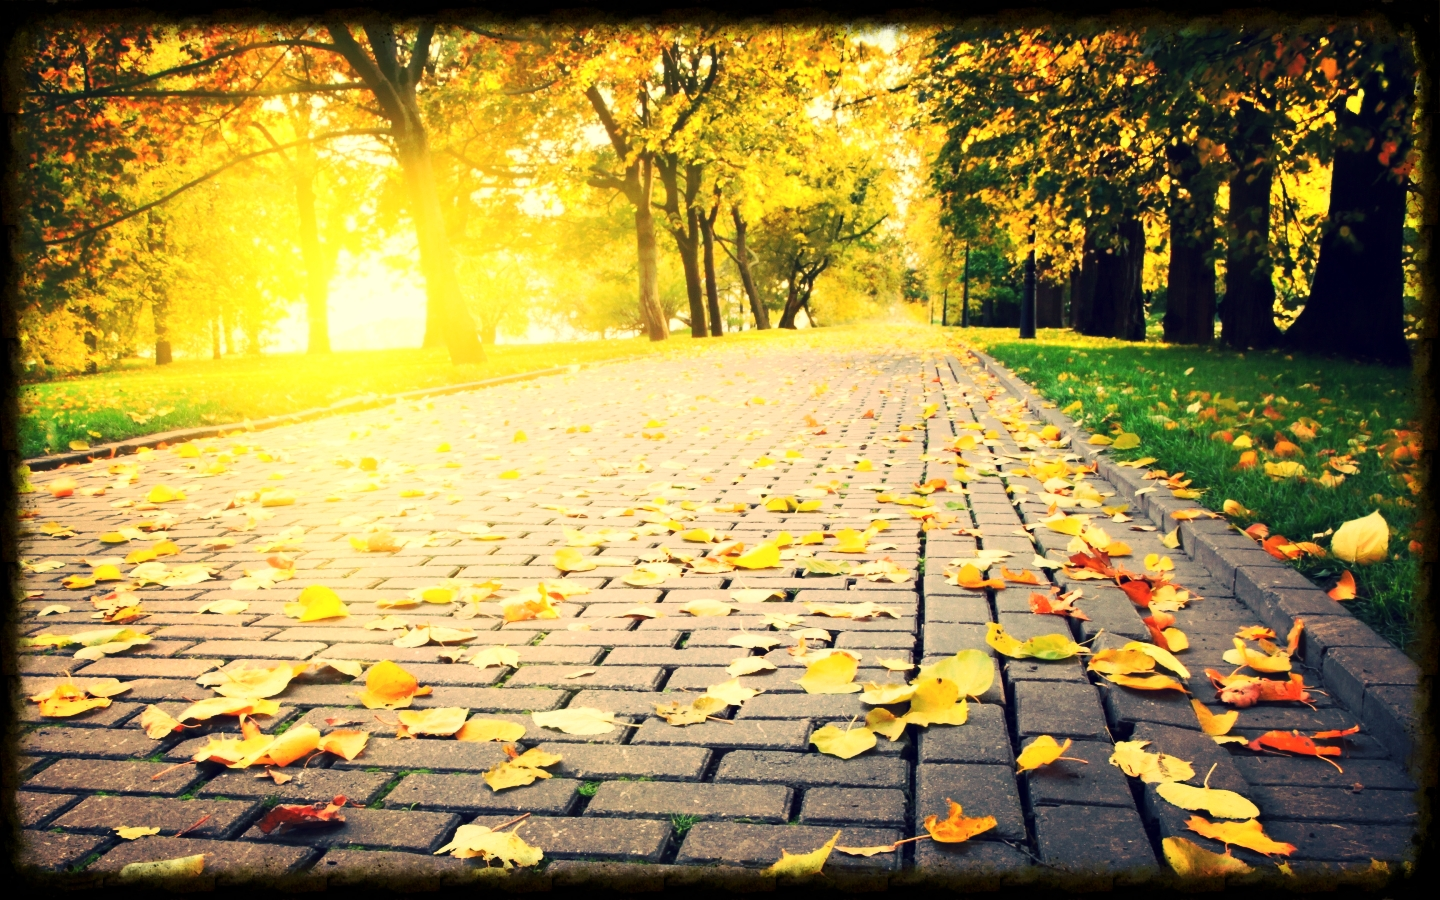 landscapes_trees_autumn_leaves_grass_path_scenic_fallen_leaves_3744x2600_wallpaper_Wallpaper_1440x900_www.wallpaperswa.com.jpg